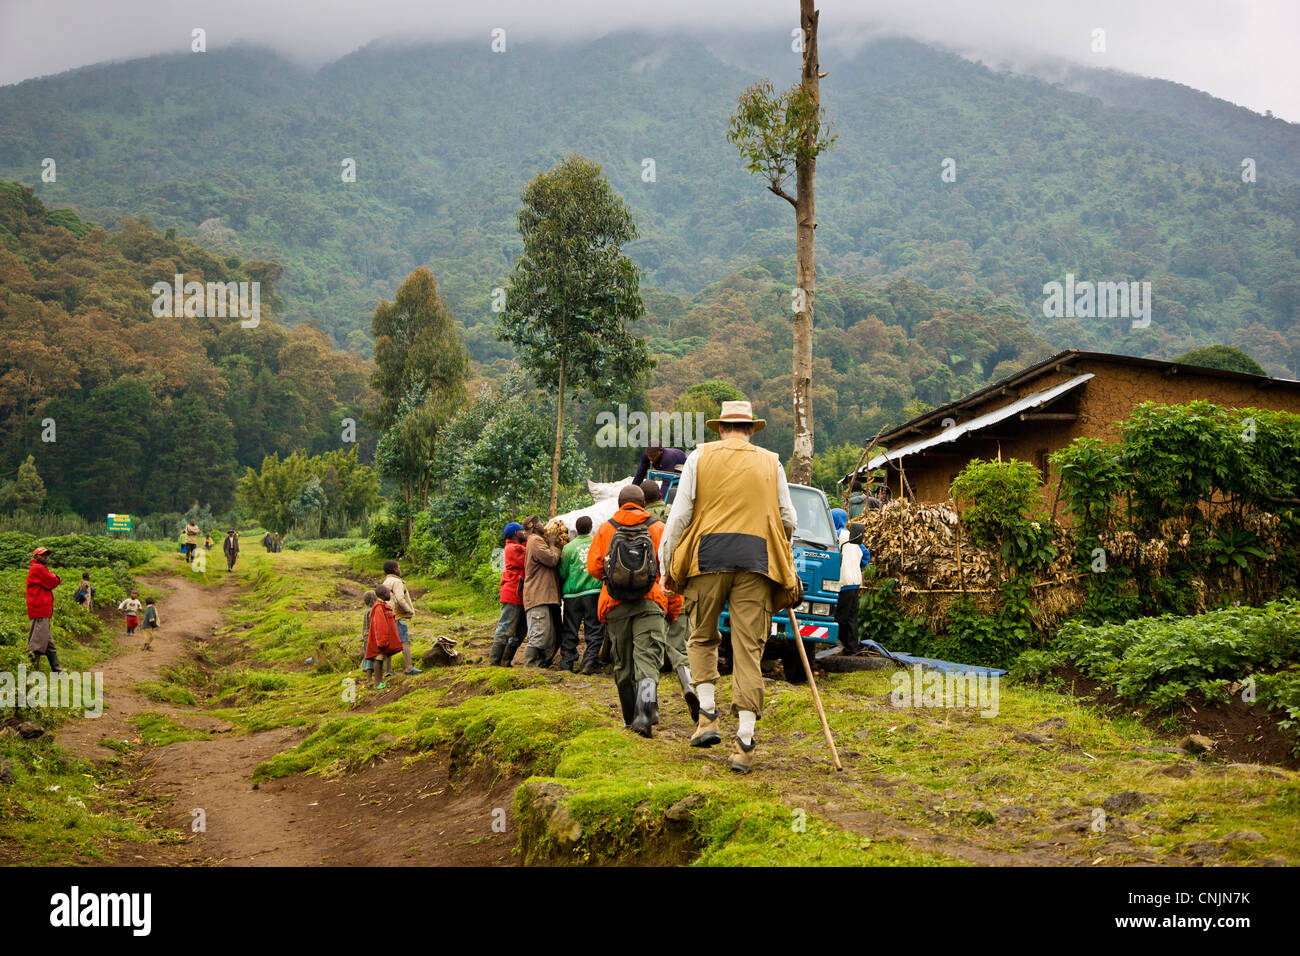 Africa, Rwanda, Gorilla Trekkers walk through potato fields near the Buffalo Wall. - Stock Image